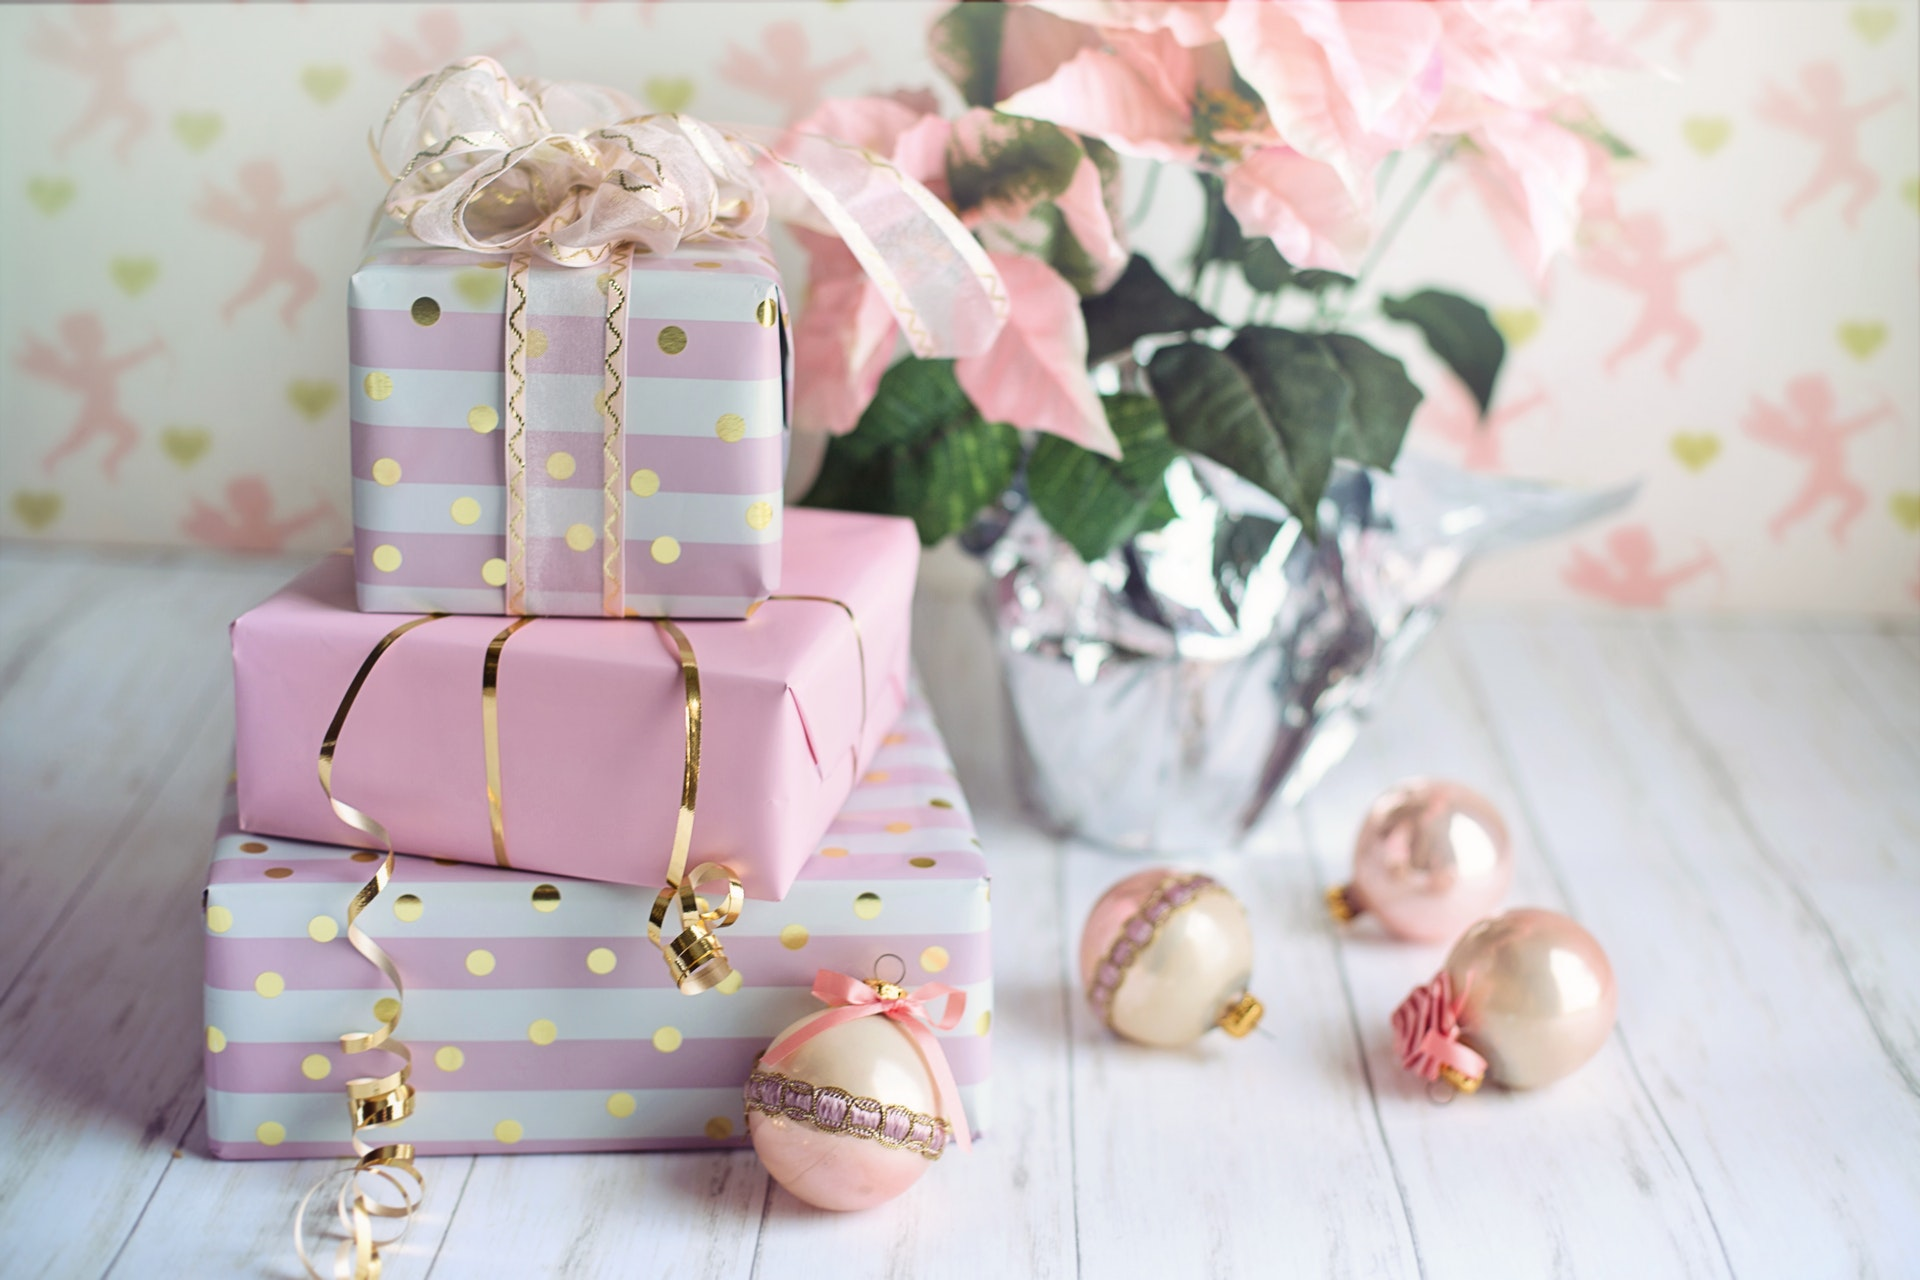 For 1 Year Wedding Anniversary Gift Ideas to Impress